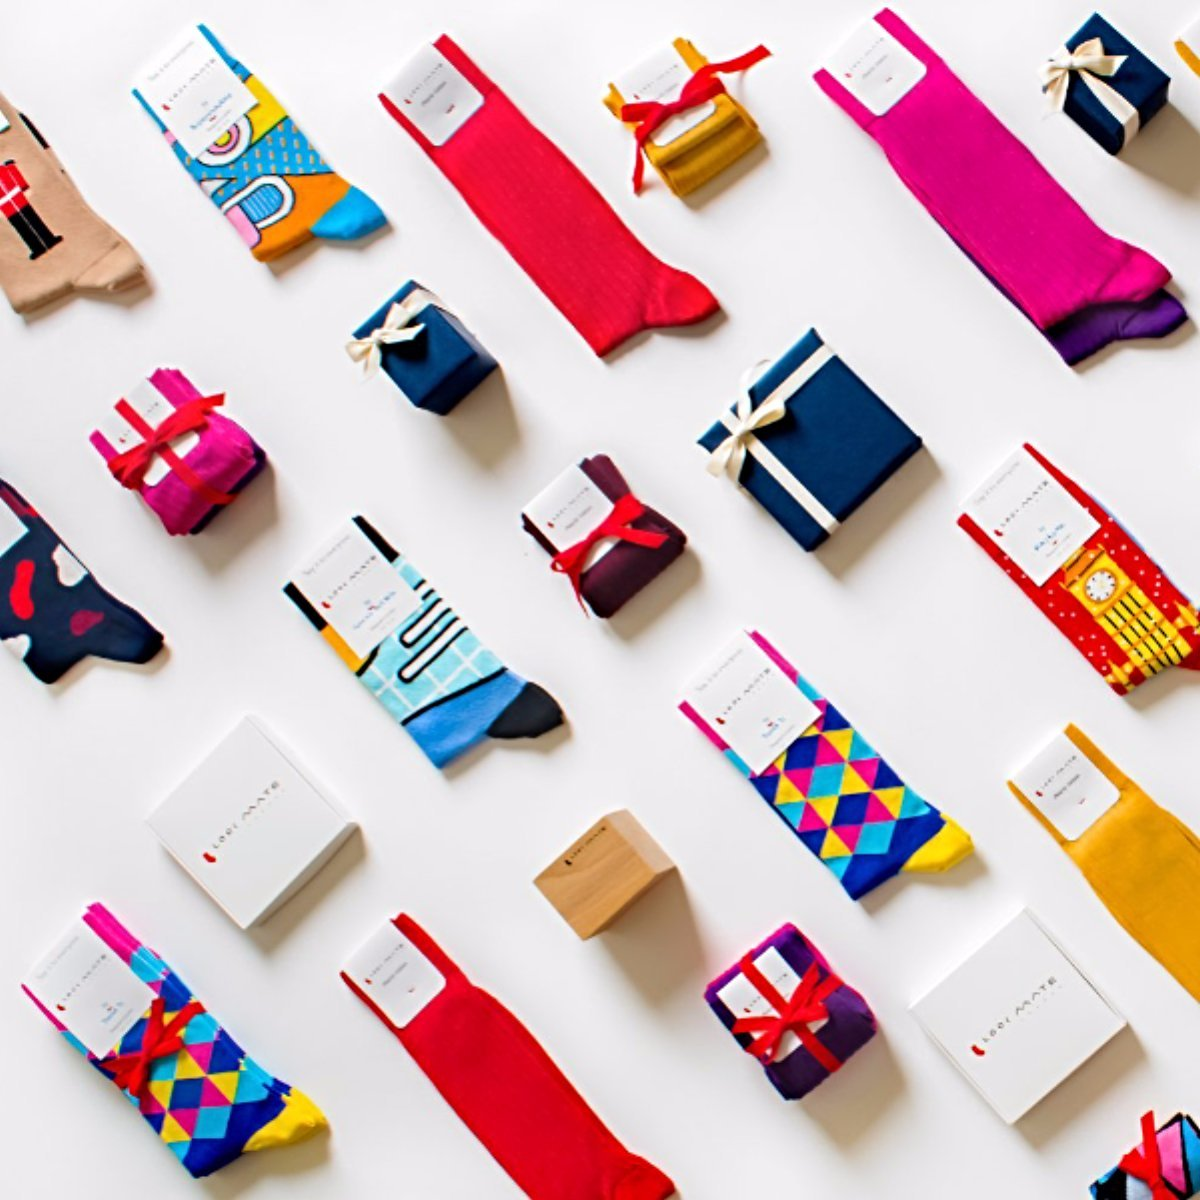 Socks - Designer Sock Subscription Gift